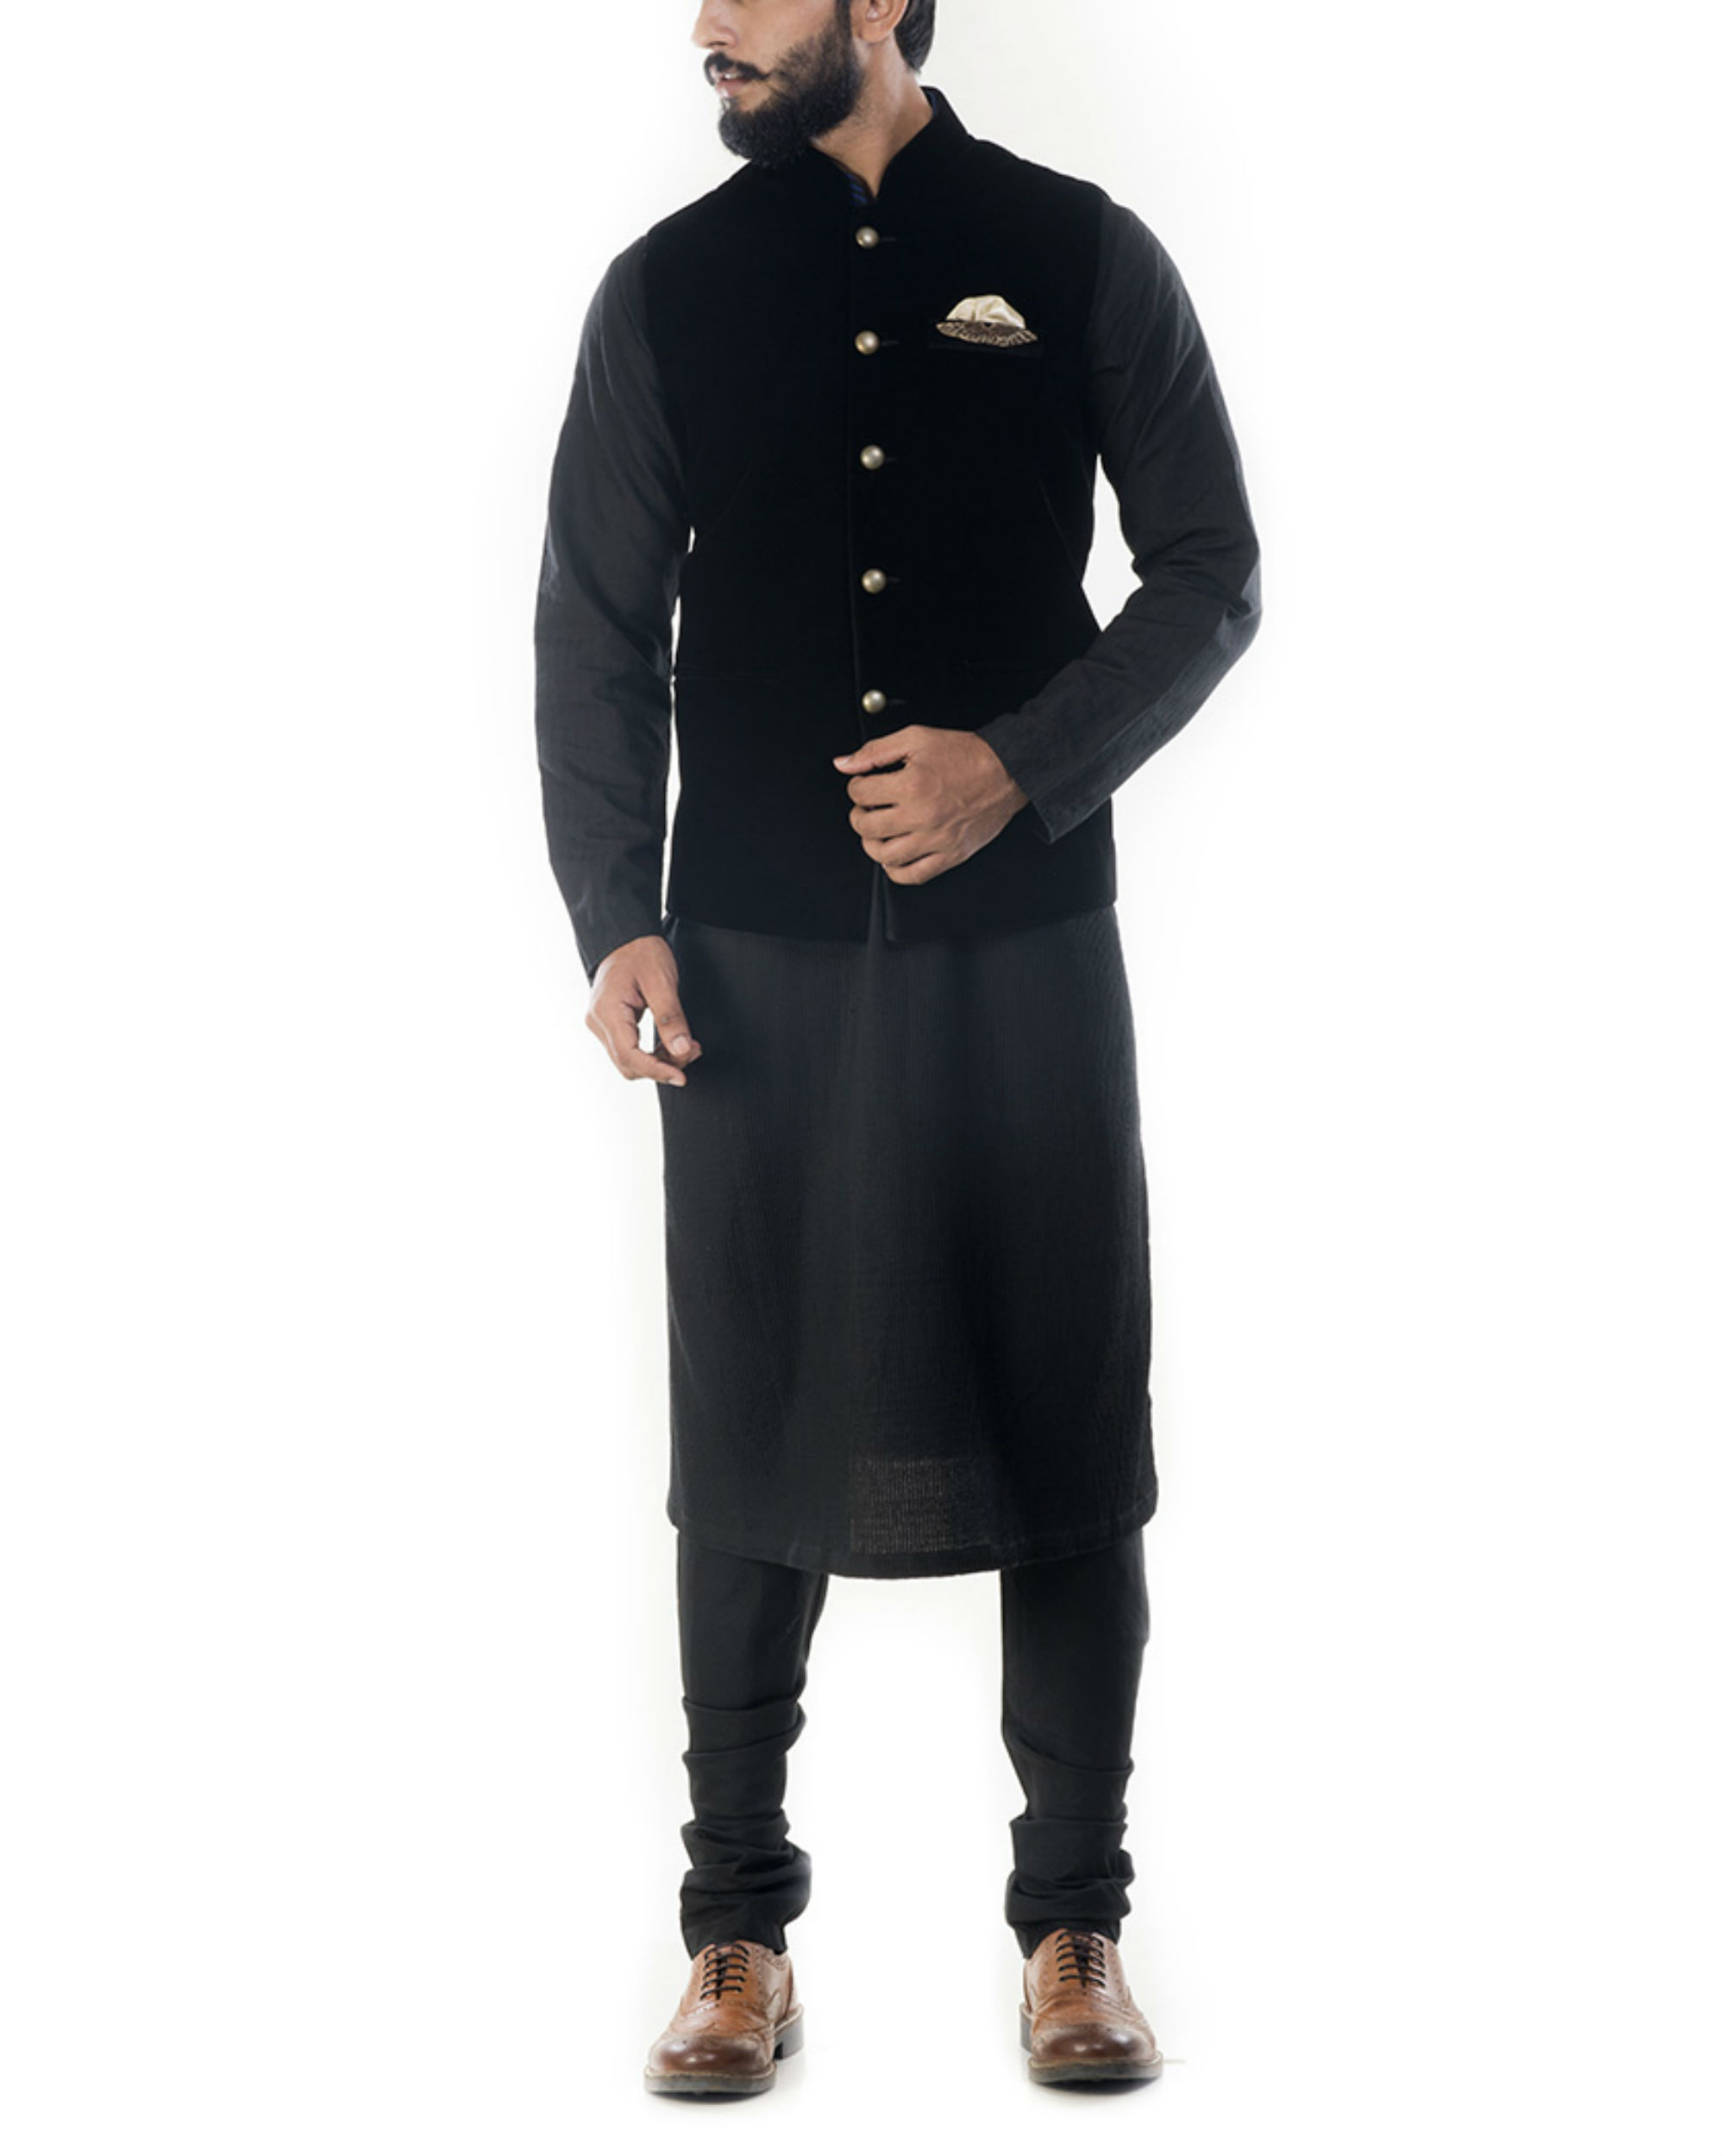 Black solid kurta with jet black velvet jacket